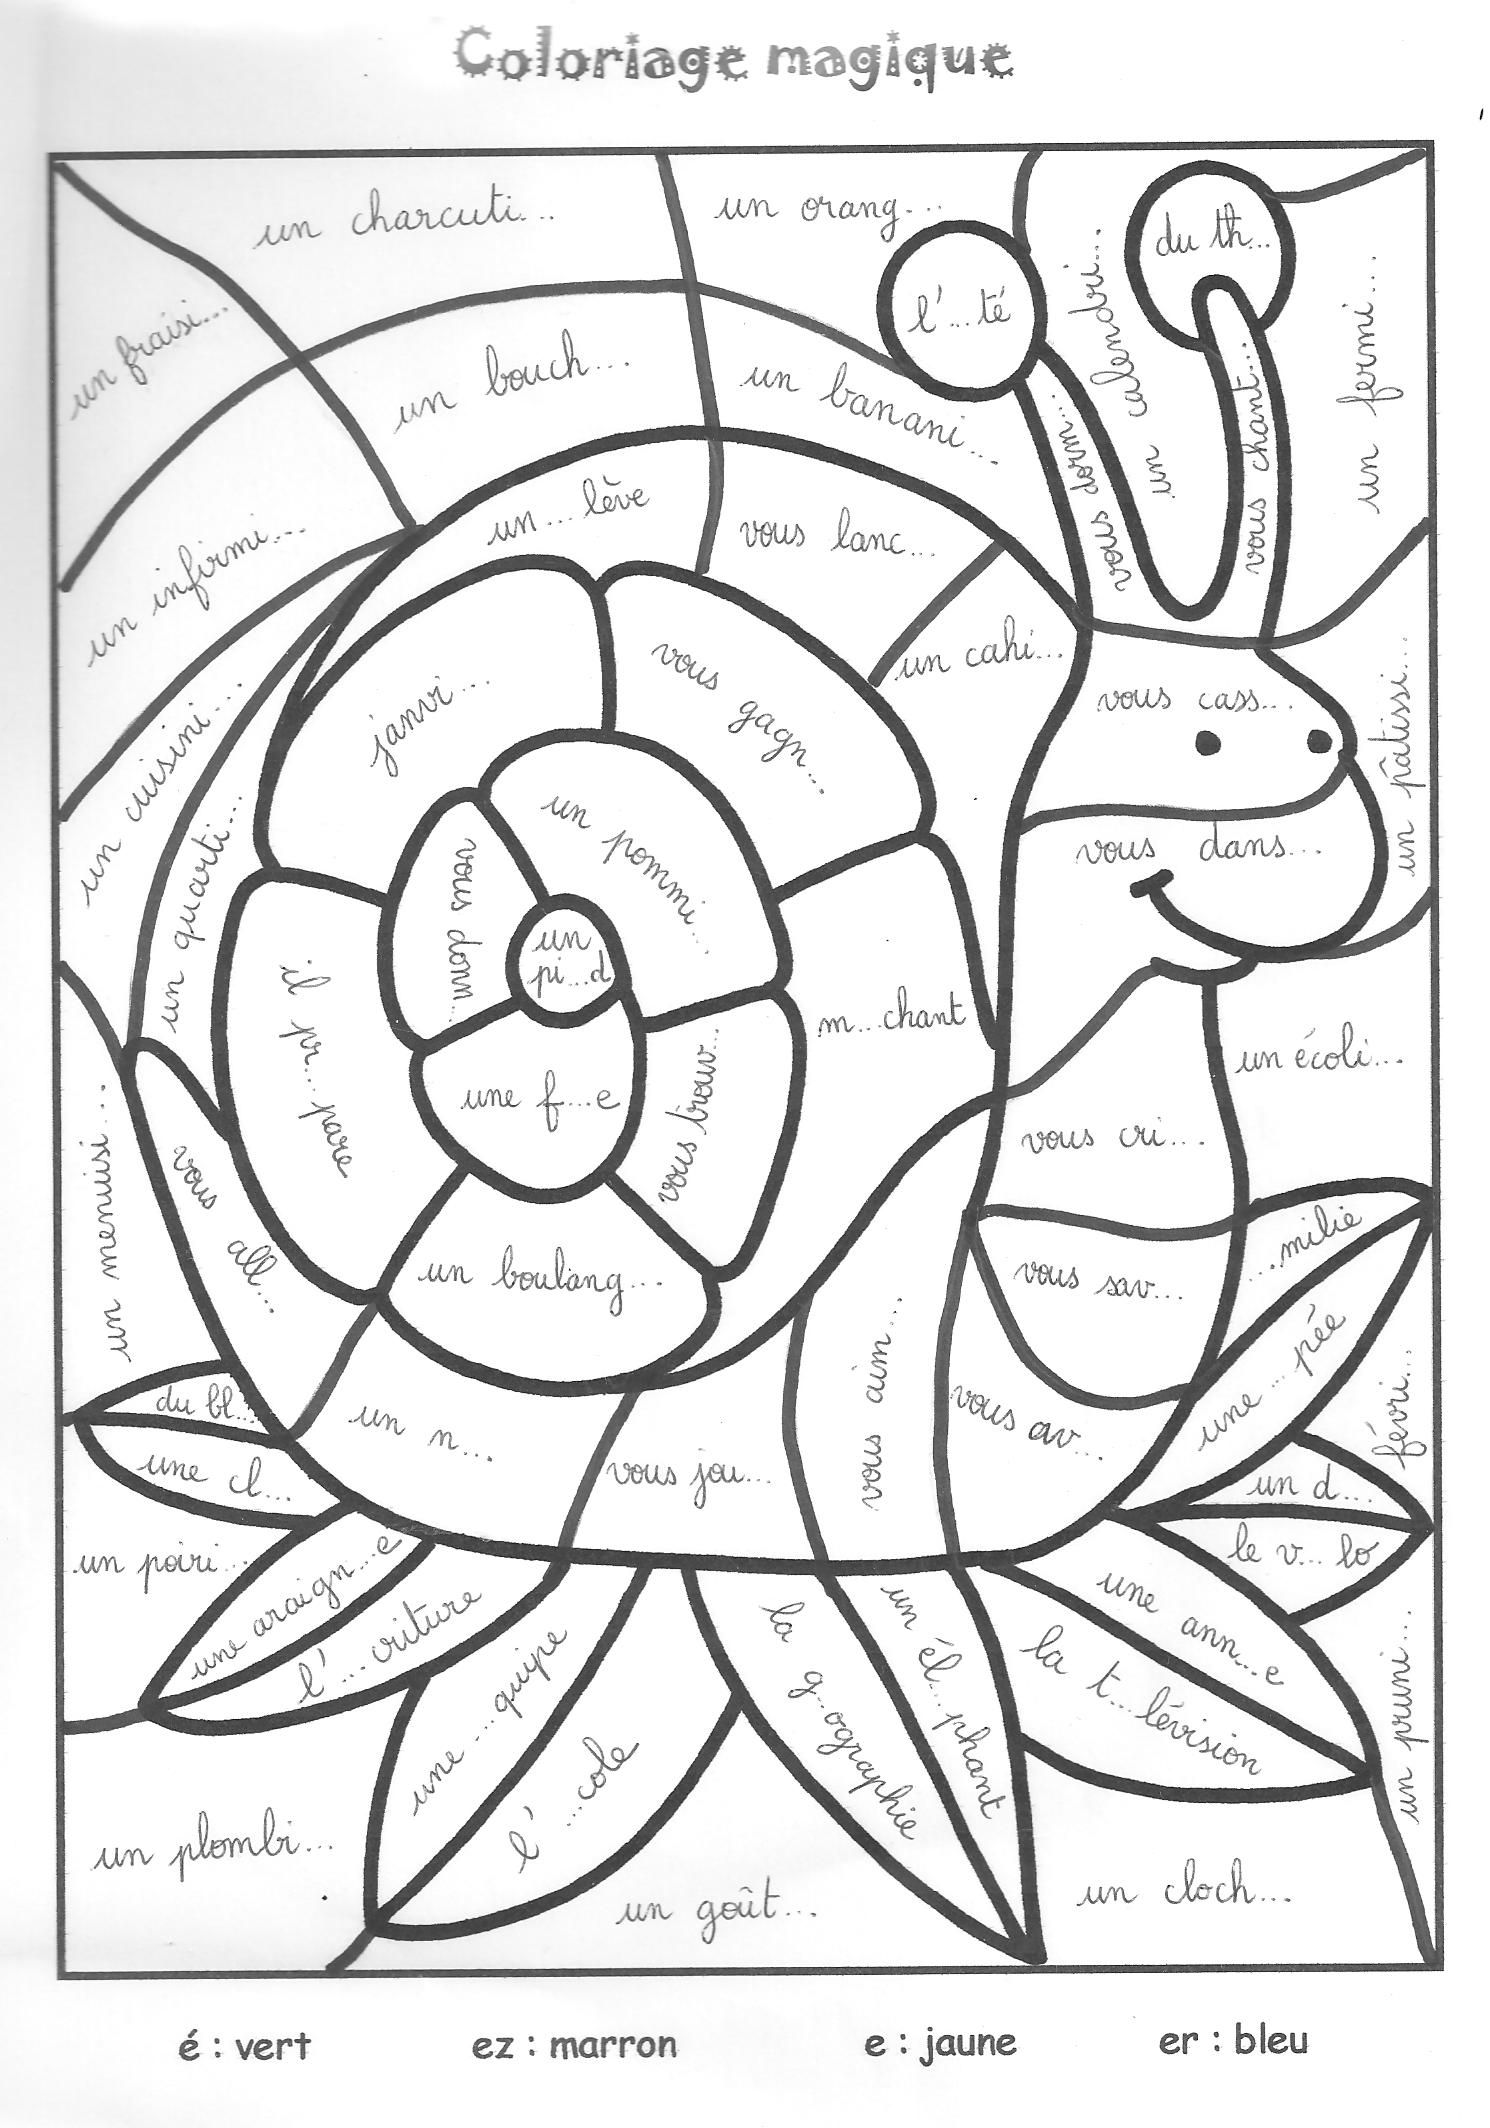 Coloriage magique cp colorier dessin imprimer for Coloriage magique table x 6